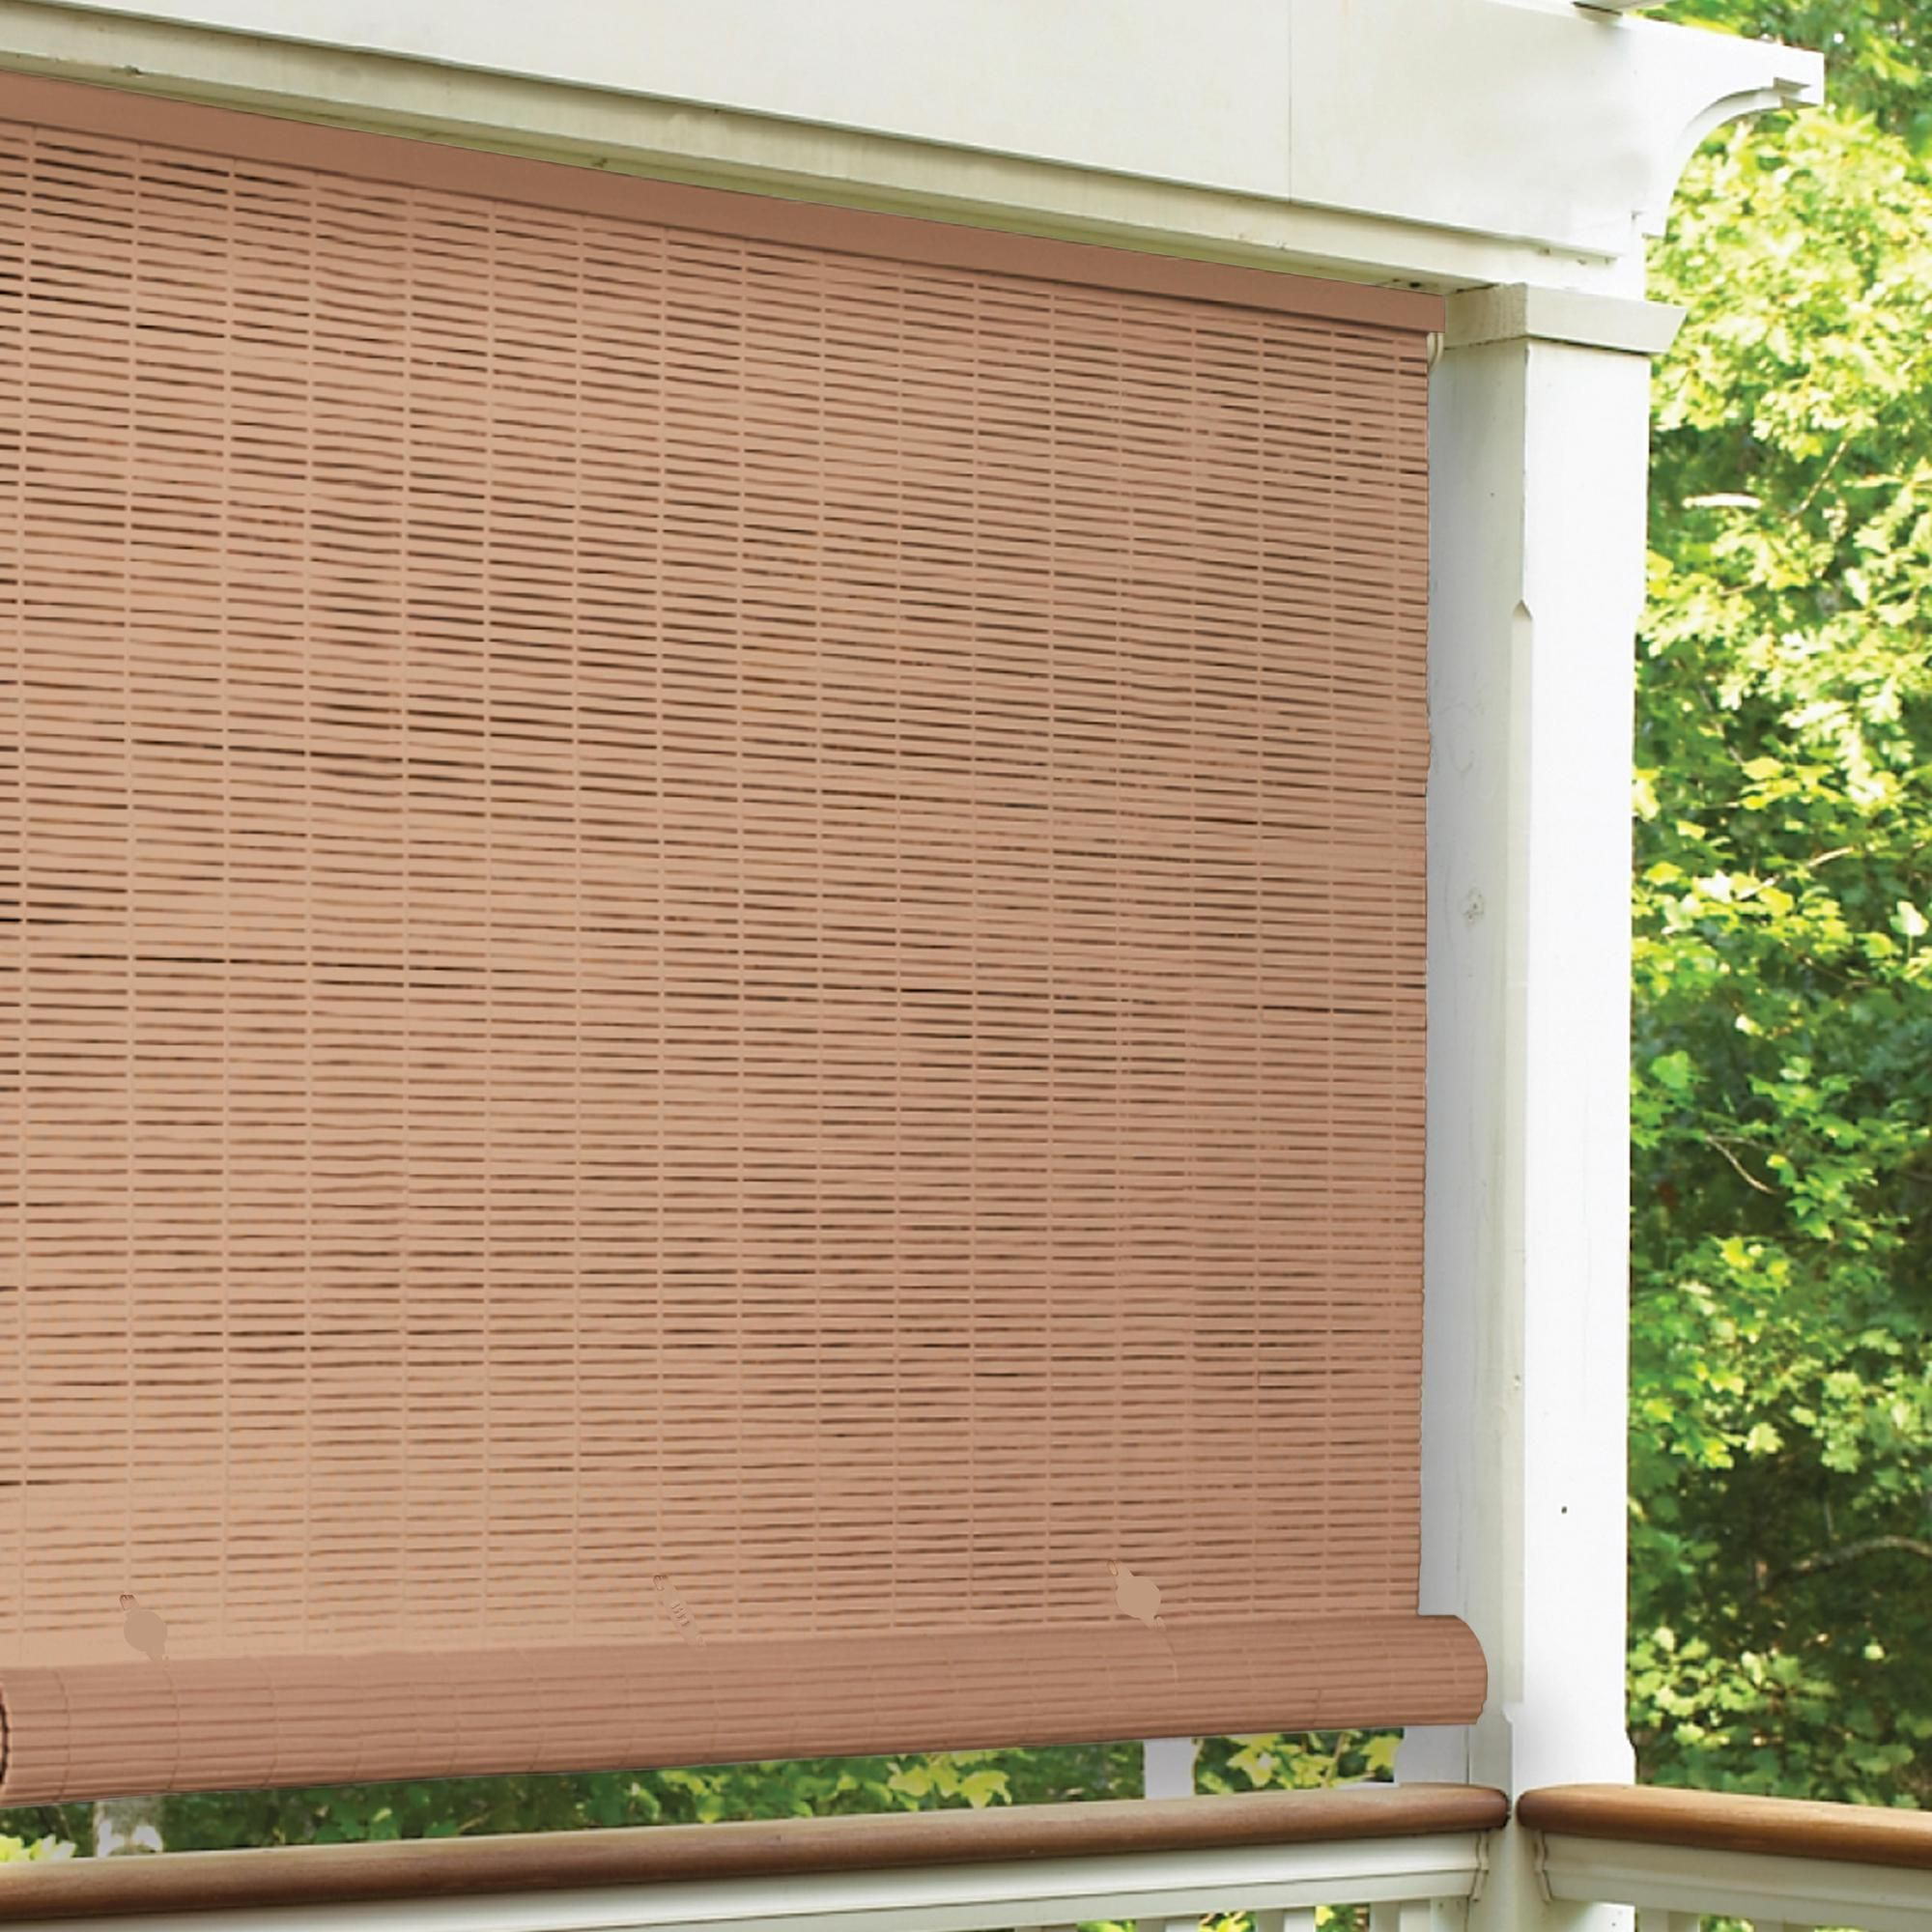 Pin By Easter Tchimbembe On Outdoor Deck Decorating In 2020 Outdoor Sun Shade Exterior Shades Outdoor Blinds